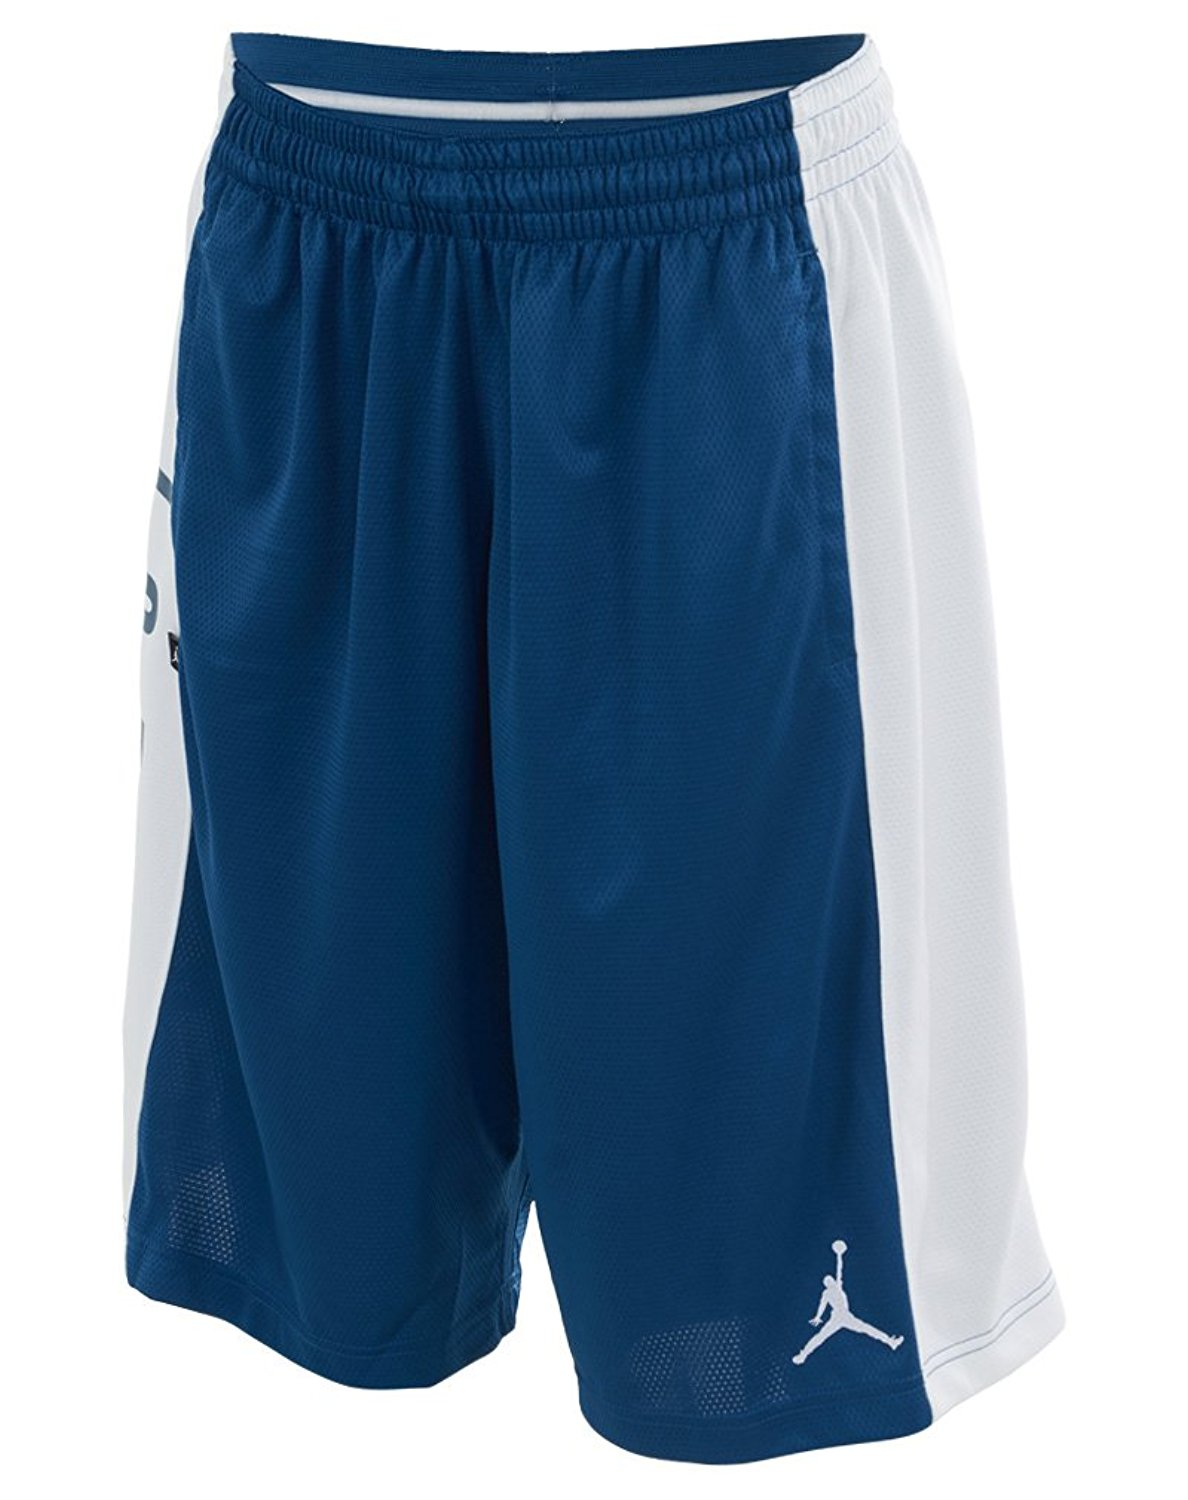 e7e1520bb4d Cheap Jordan Basketball Shorts, find Jordan Basketball Shorts deals ...